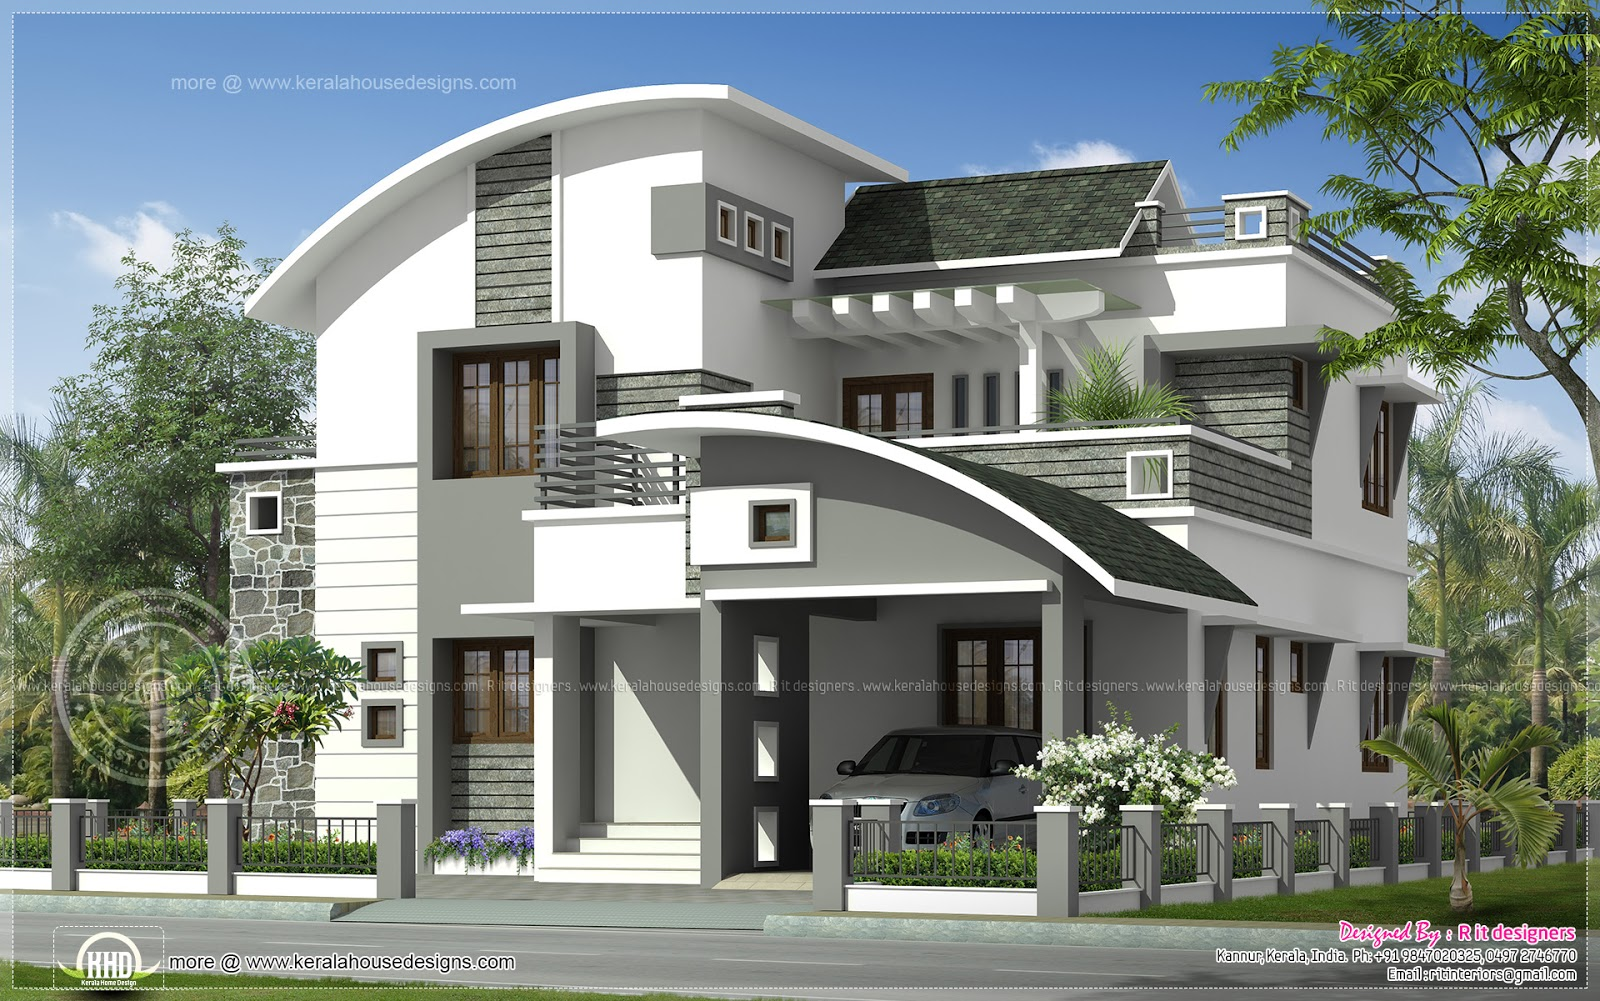 2200 sq ft modern villa exterior kerala home design and for Villas designs photos